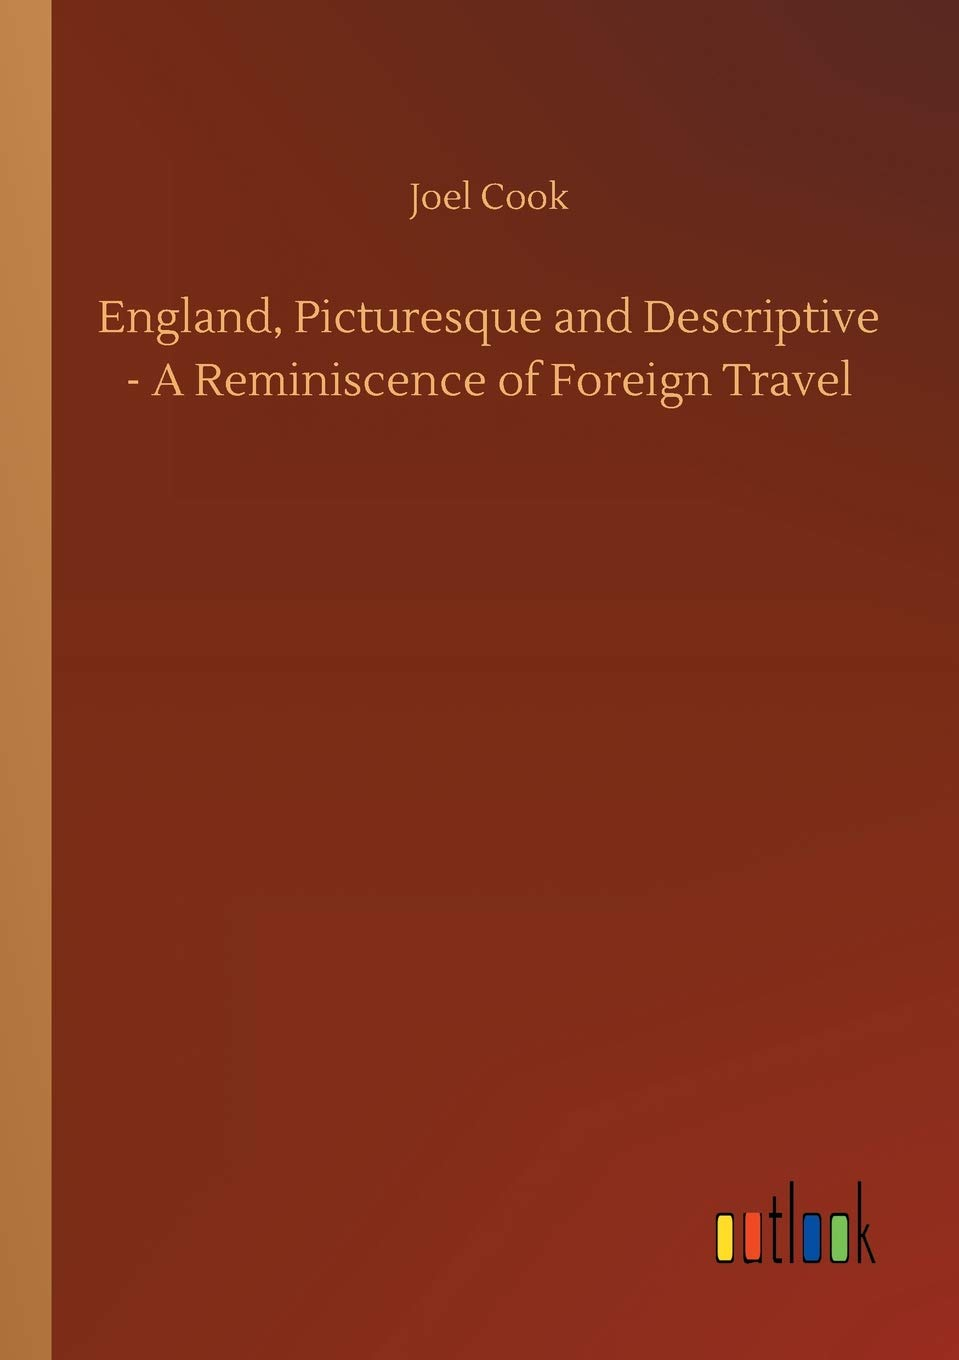 England, Picturesque and Descriptive: A Reminiscence of Foreign Travel